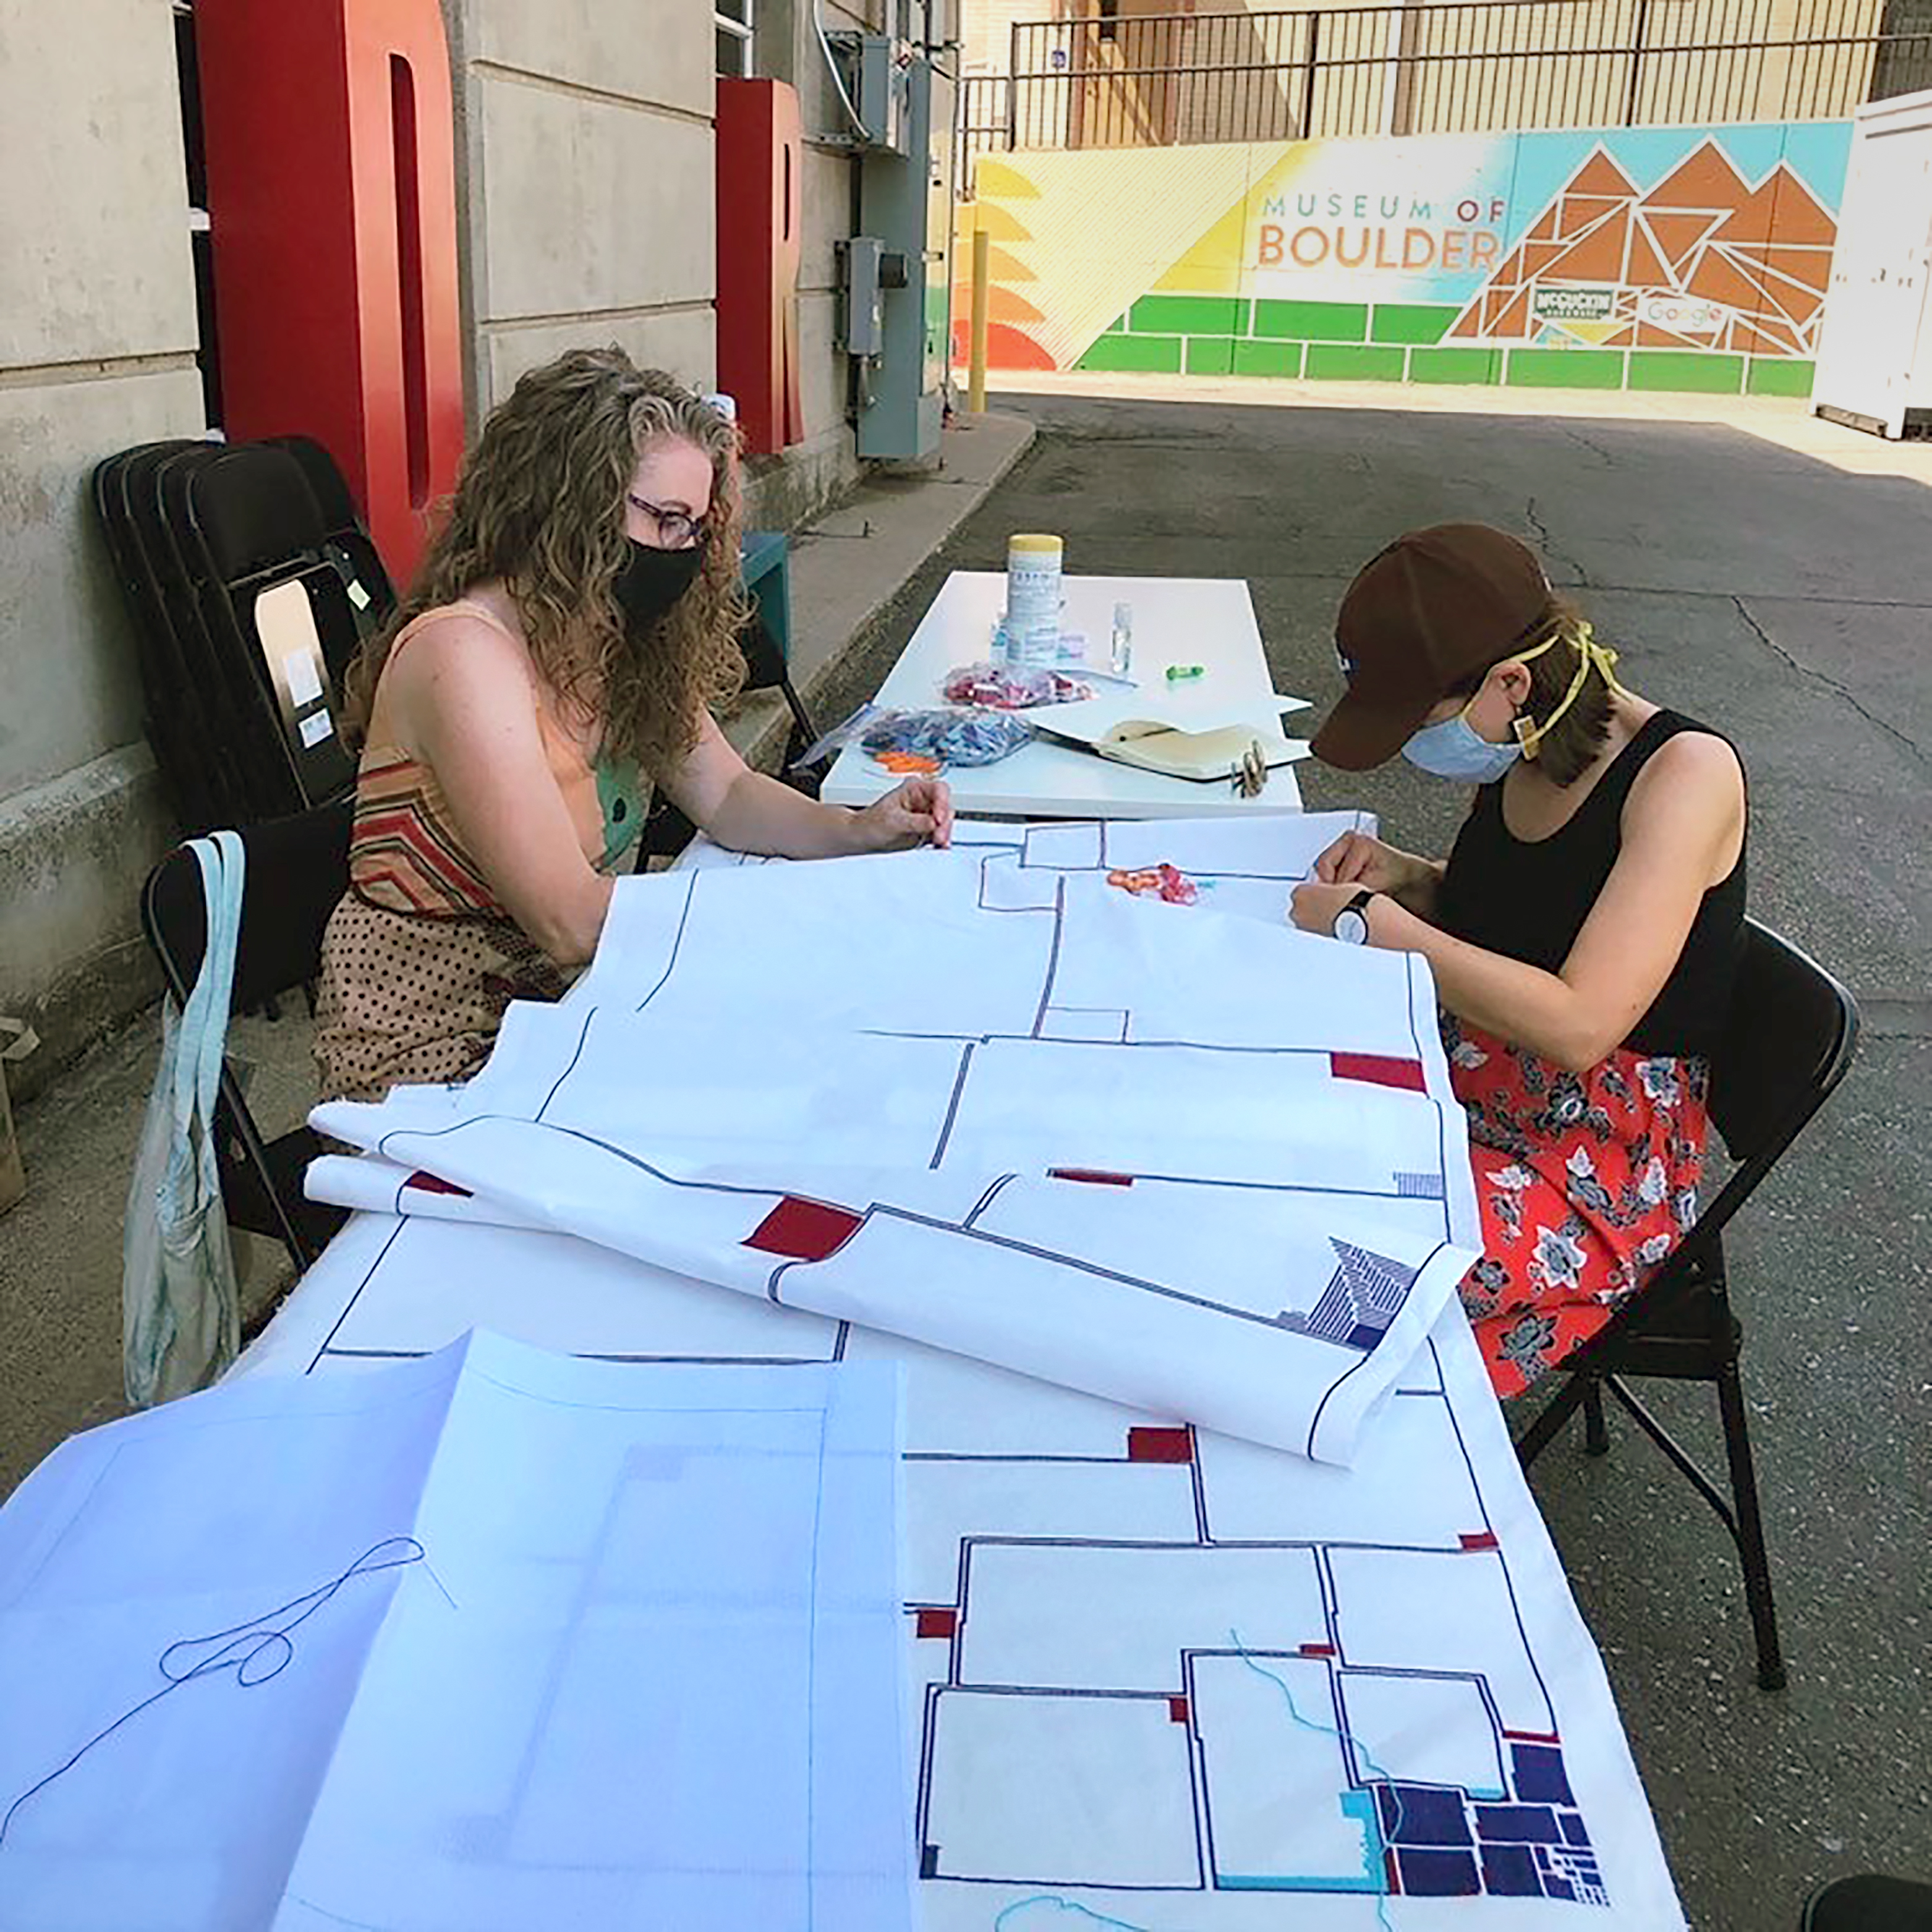 Two people sitting at on outdoor table, stitching on large cloths with geometric shapes.